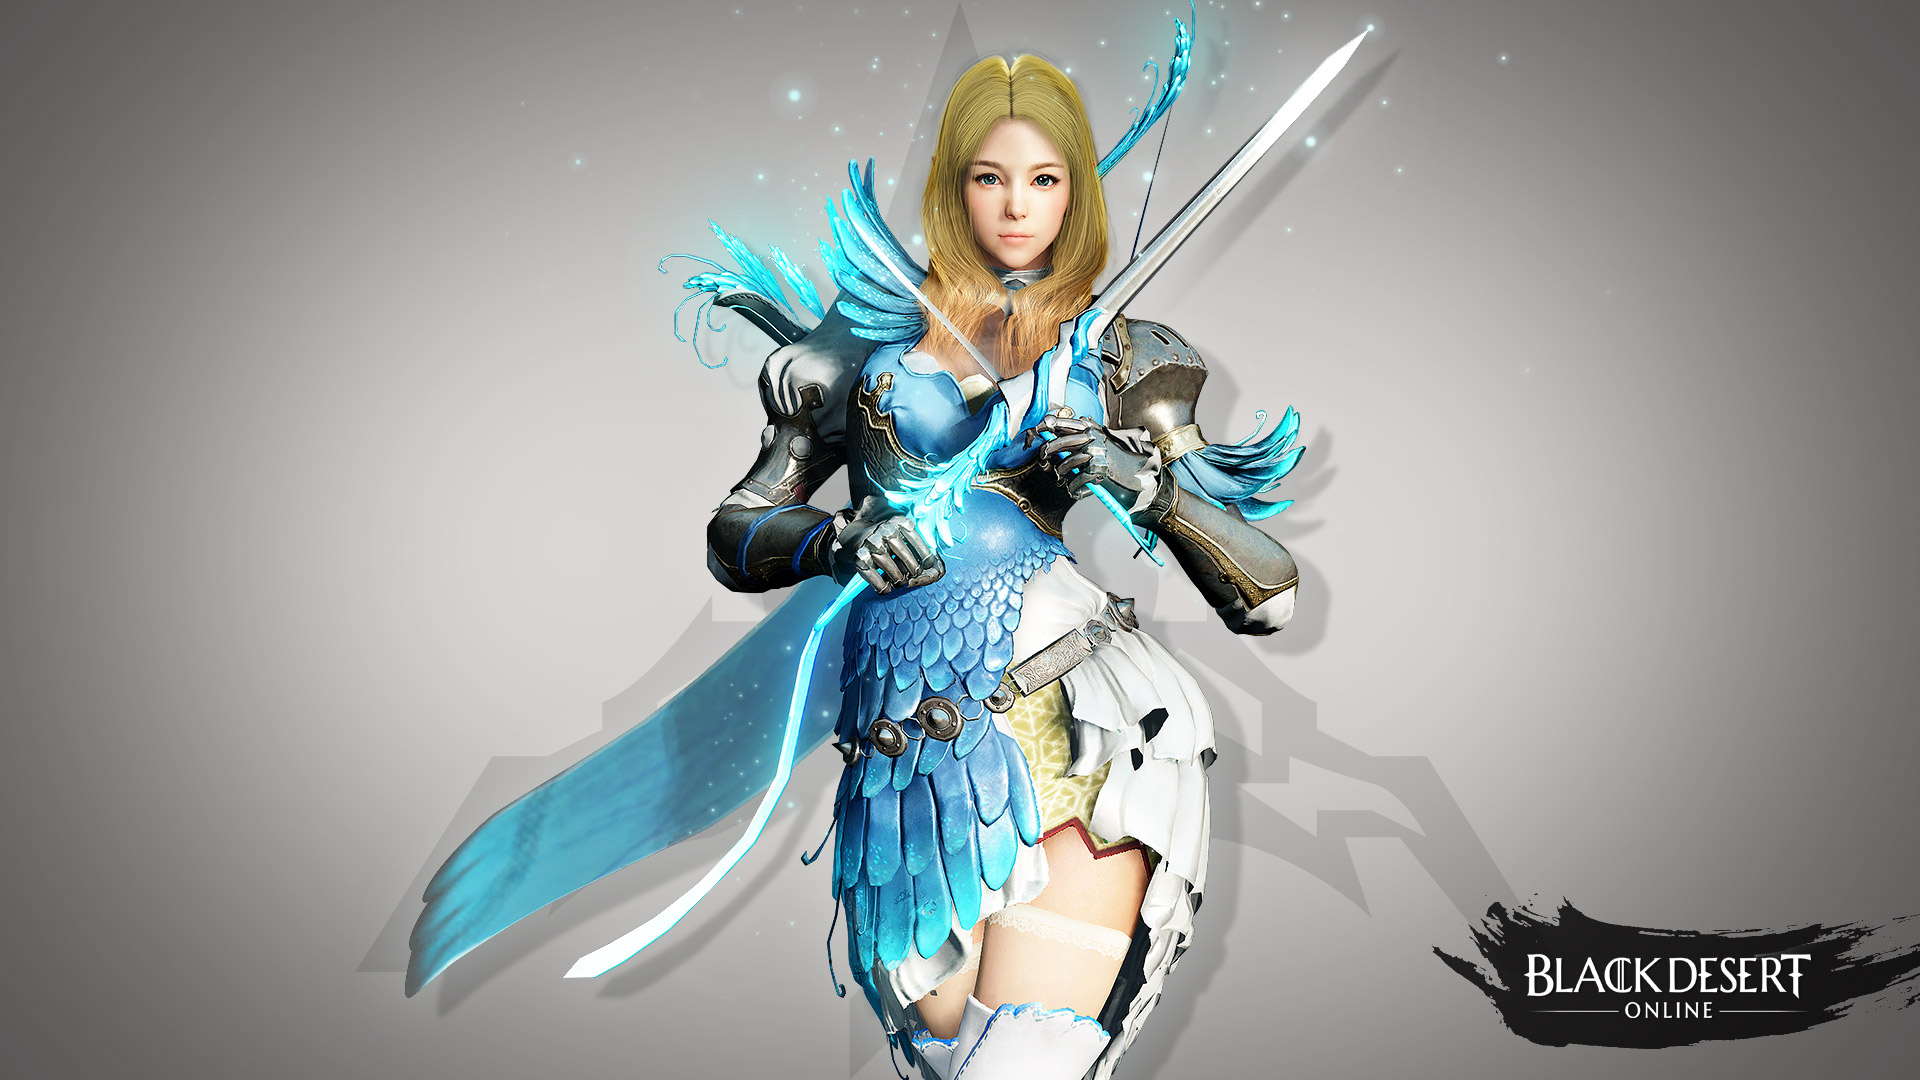 Black Desert Online Wallpapers, Pictures, Images